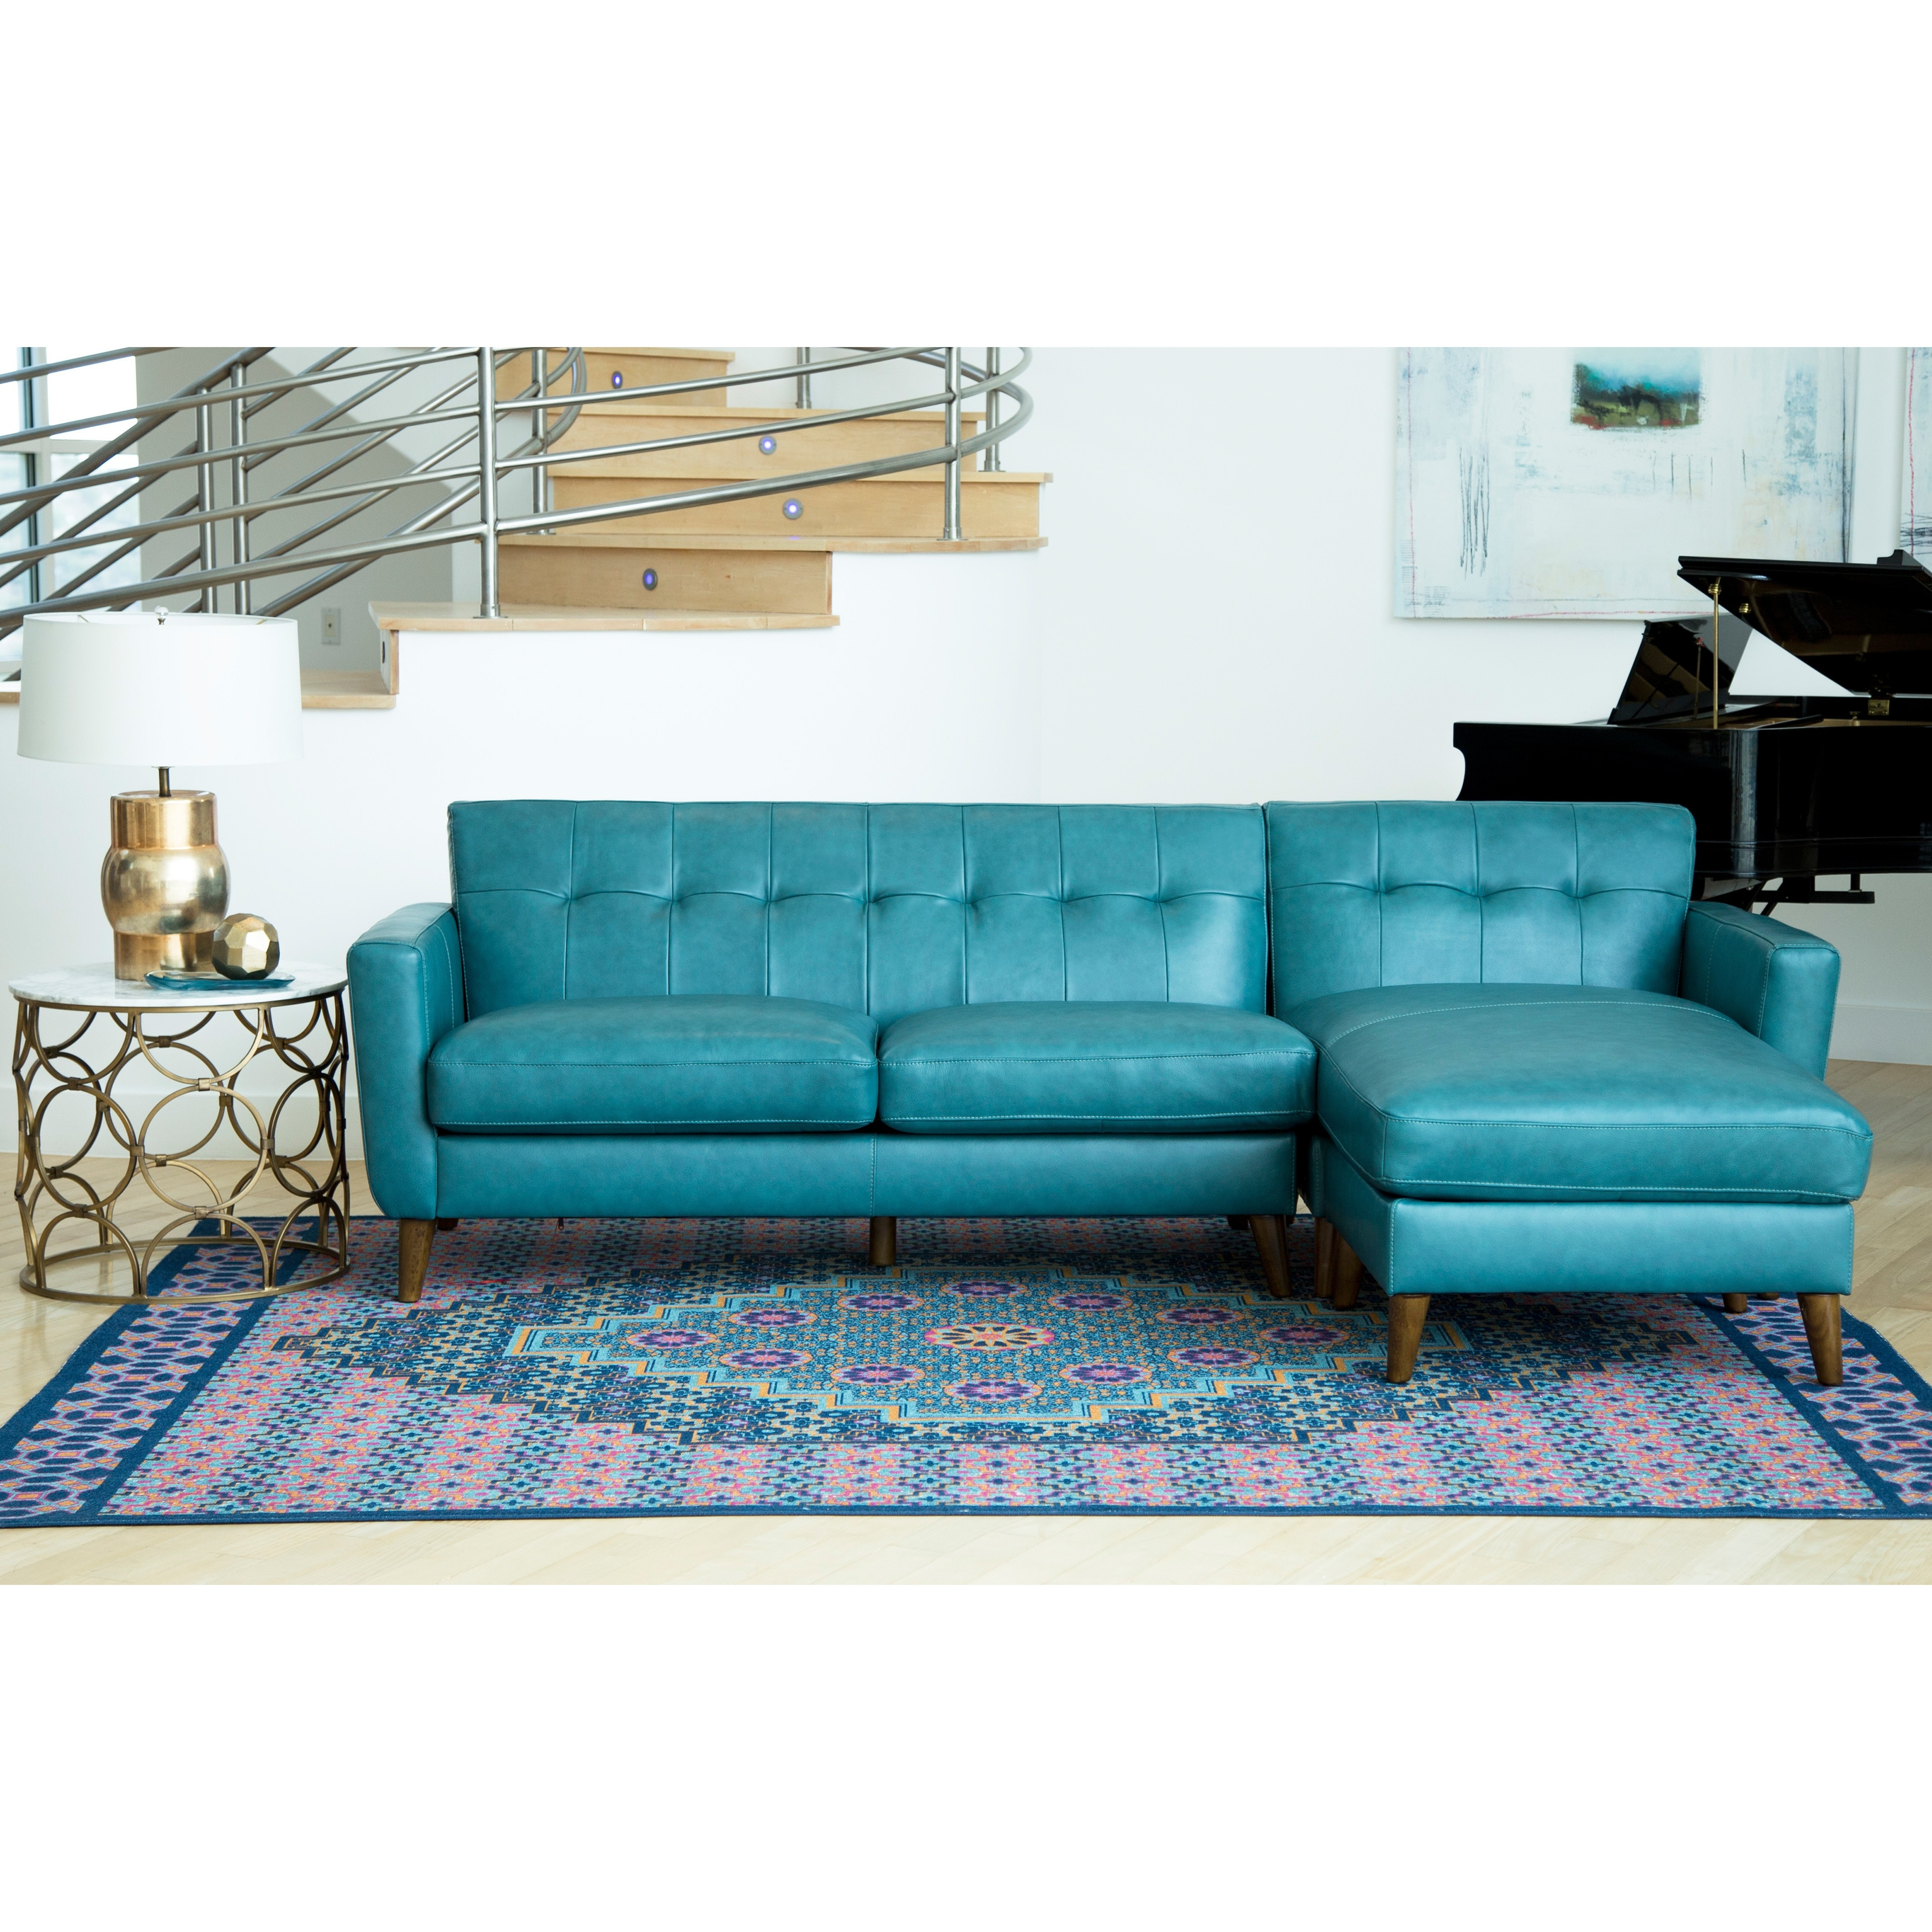 Merveilleux Shop Abbyson Nancy Ocean Blue Top Grain Leather Sectional Sofa   Free  Shipping Today   Overstock.com   18115433